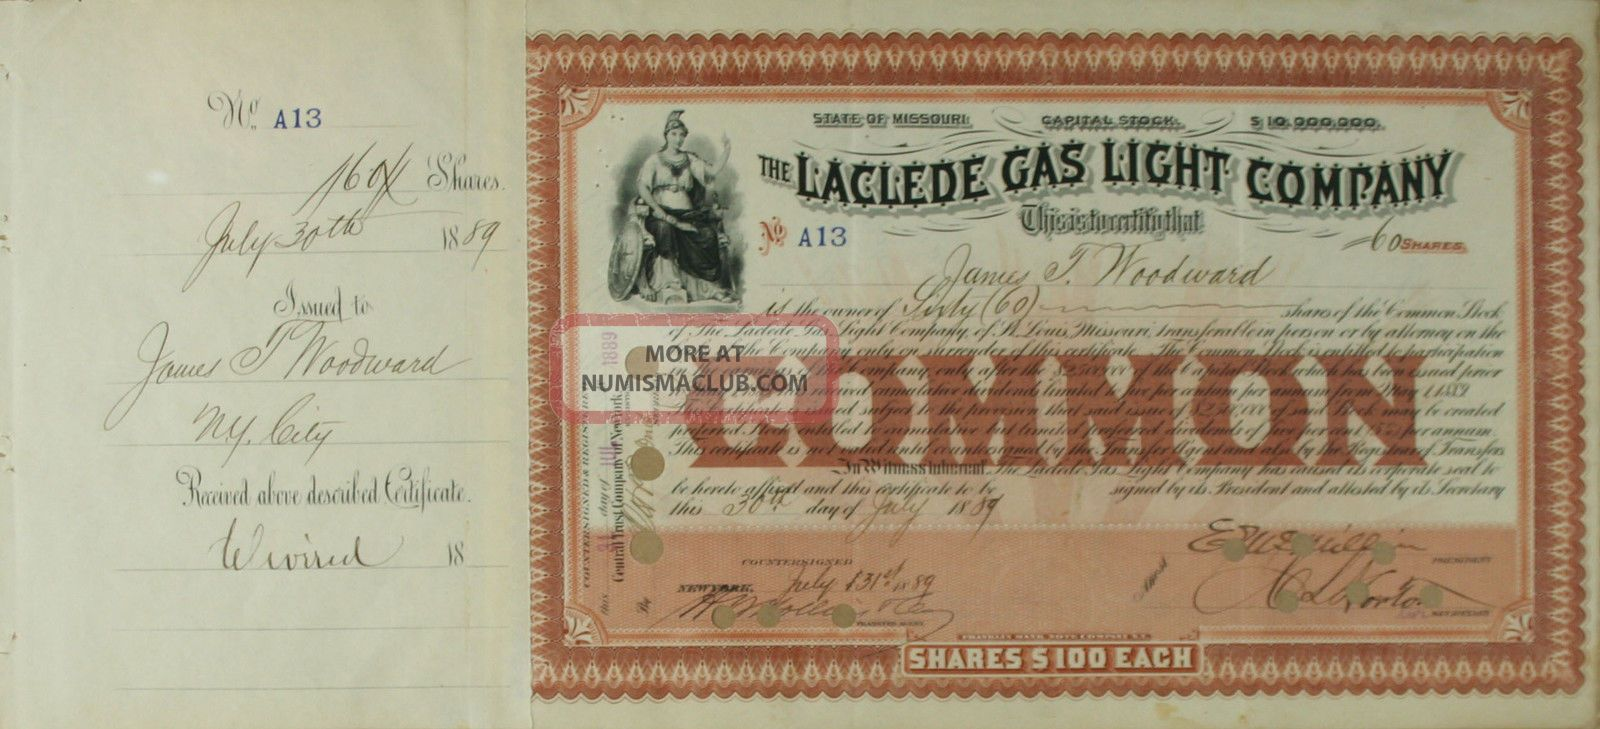 S1011 Laclede Gas Light Company 1800s Stock Certificate Brown Stocks & Bonds, Scripophily photo